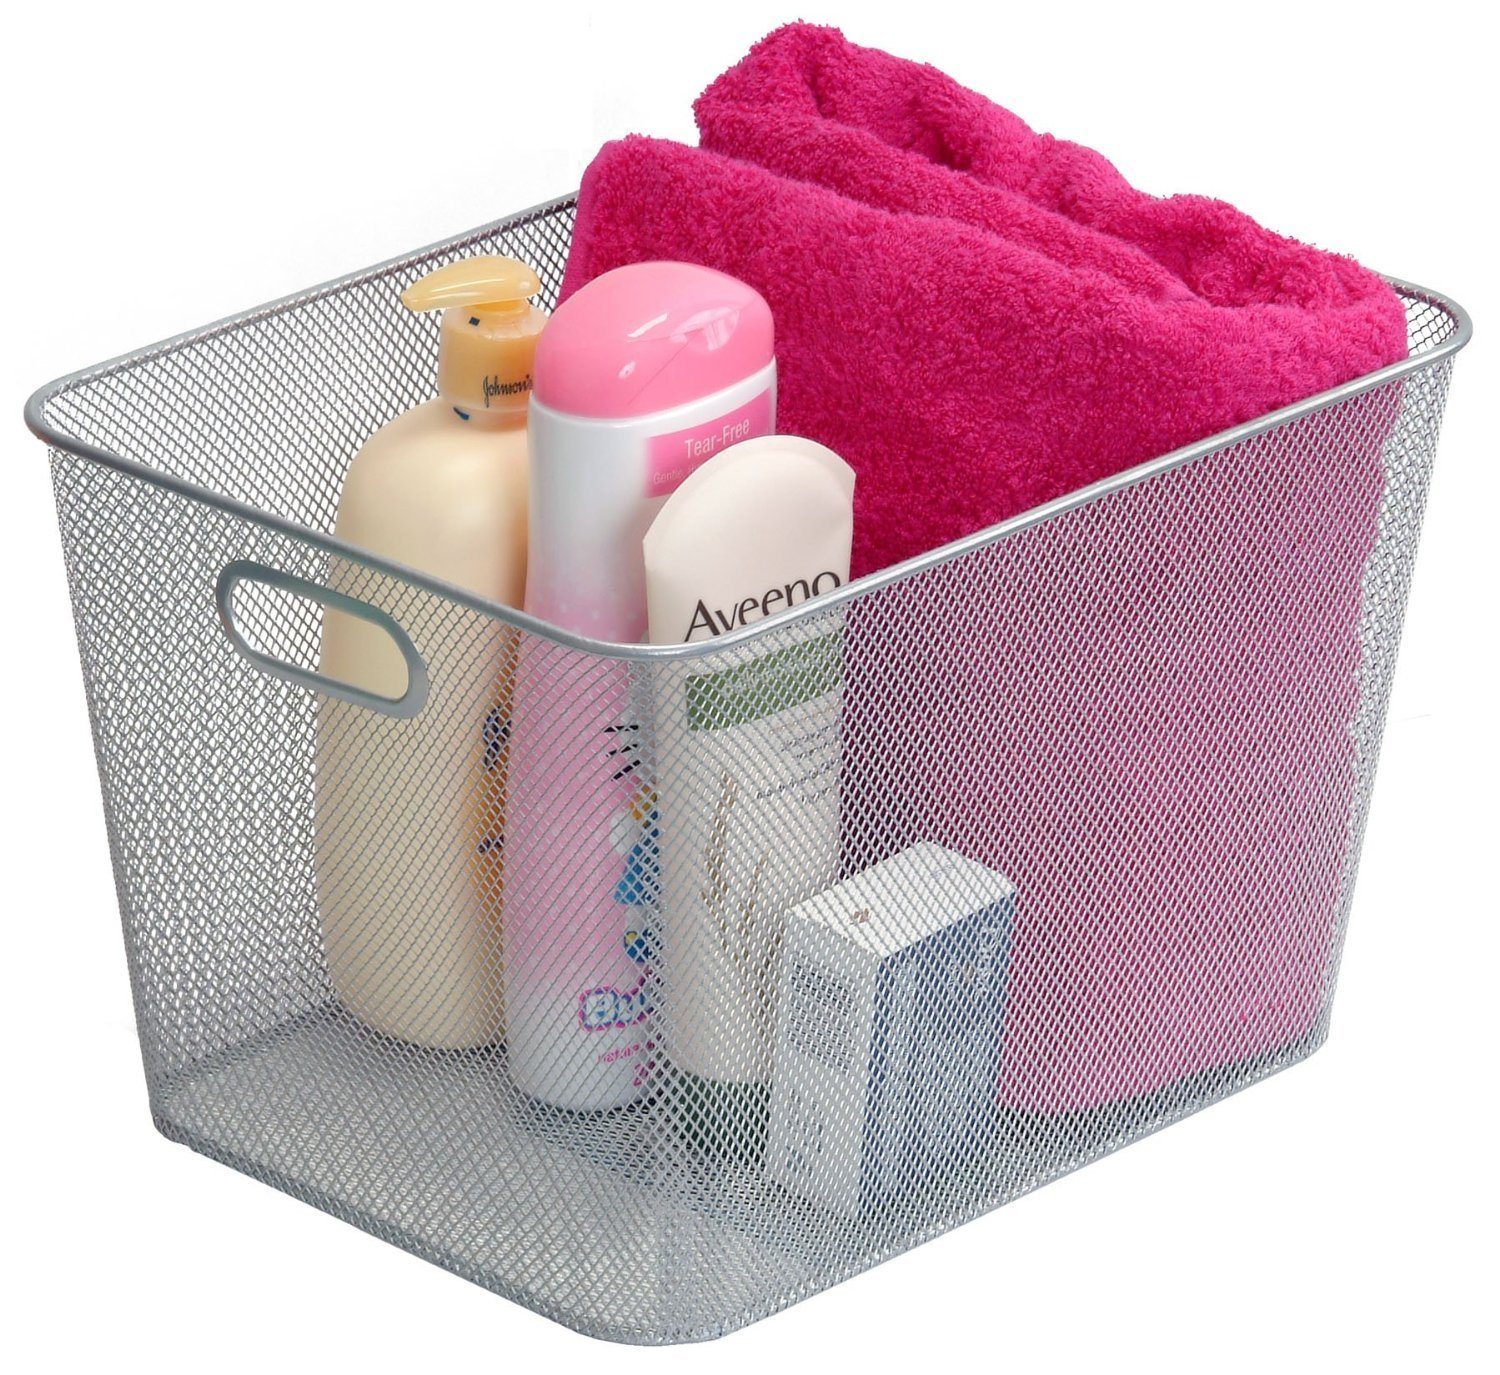 Silver Mesh Open Bin Storage Basket for Cleaning Supplies